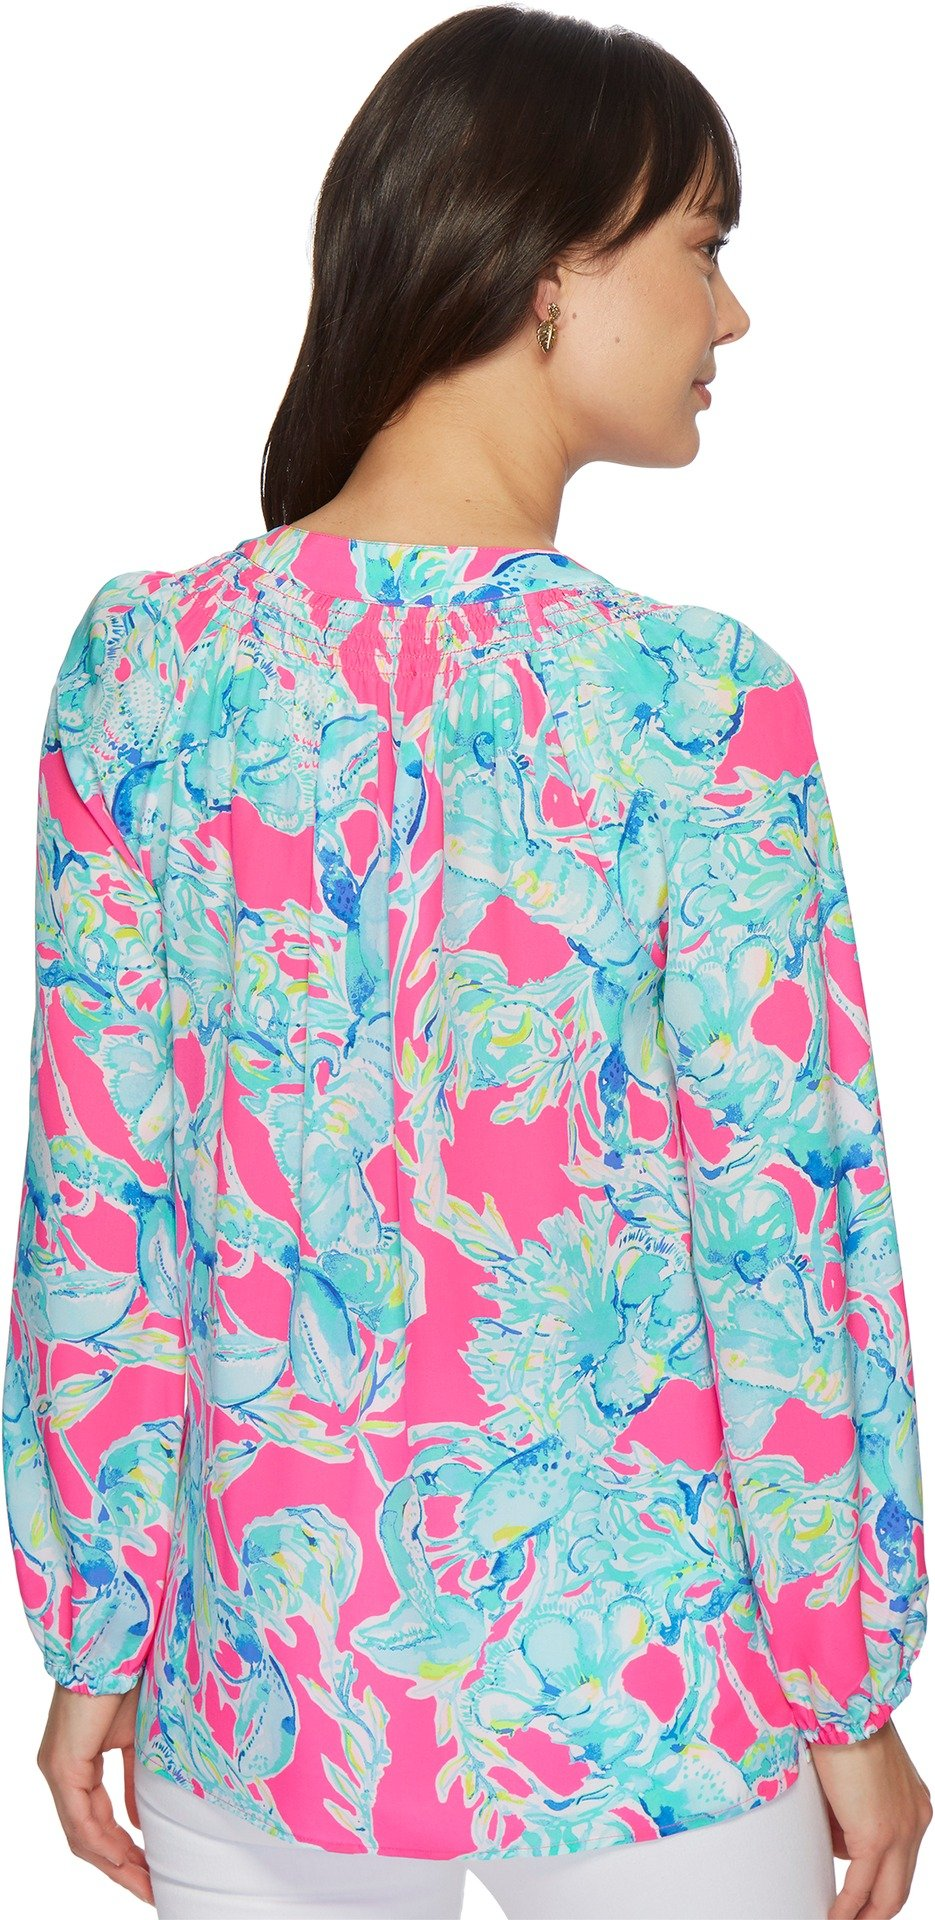 Lilly Pulitzer Women's Elsa Top Raz Berry Lobsters in Love Small by Lilly Pulitzer (Image #3)